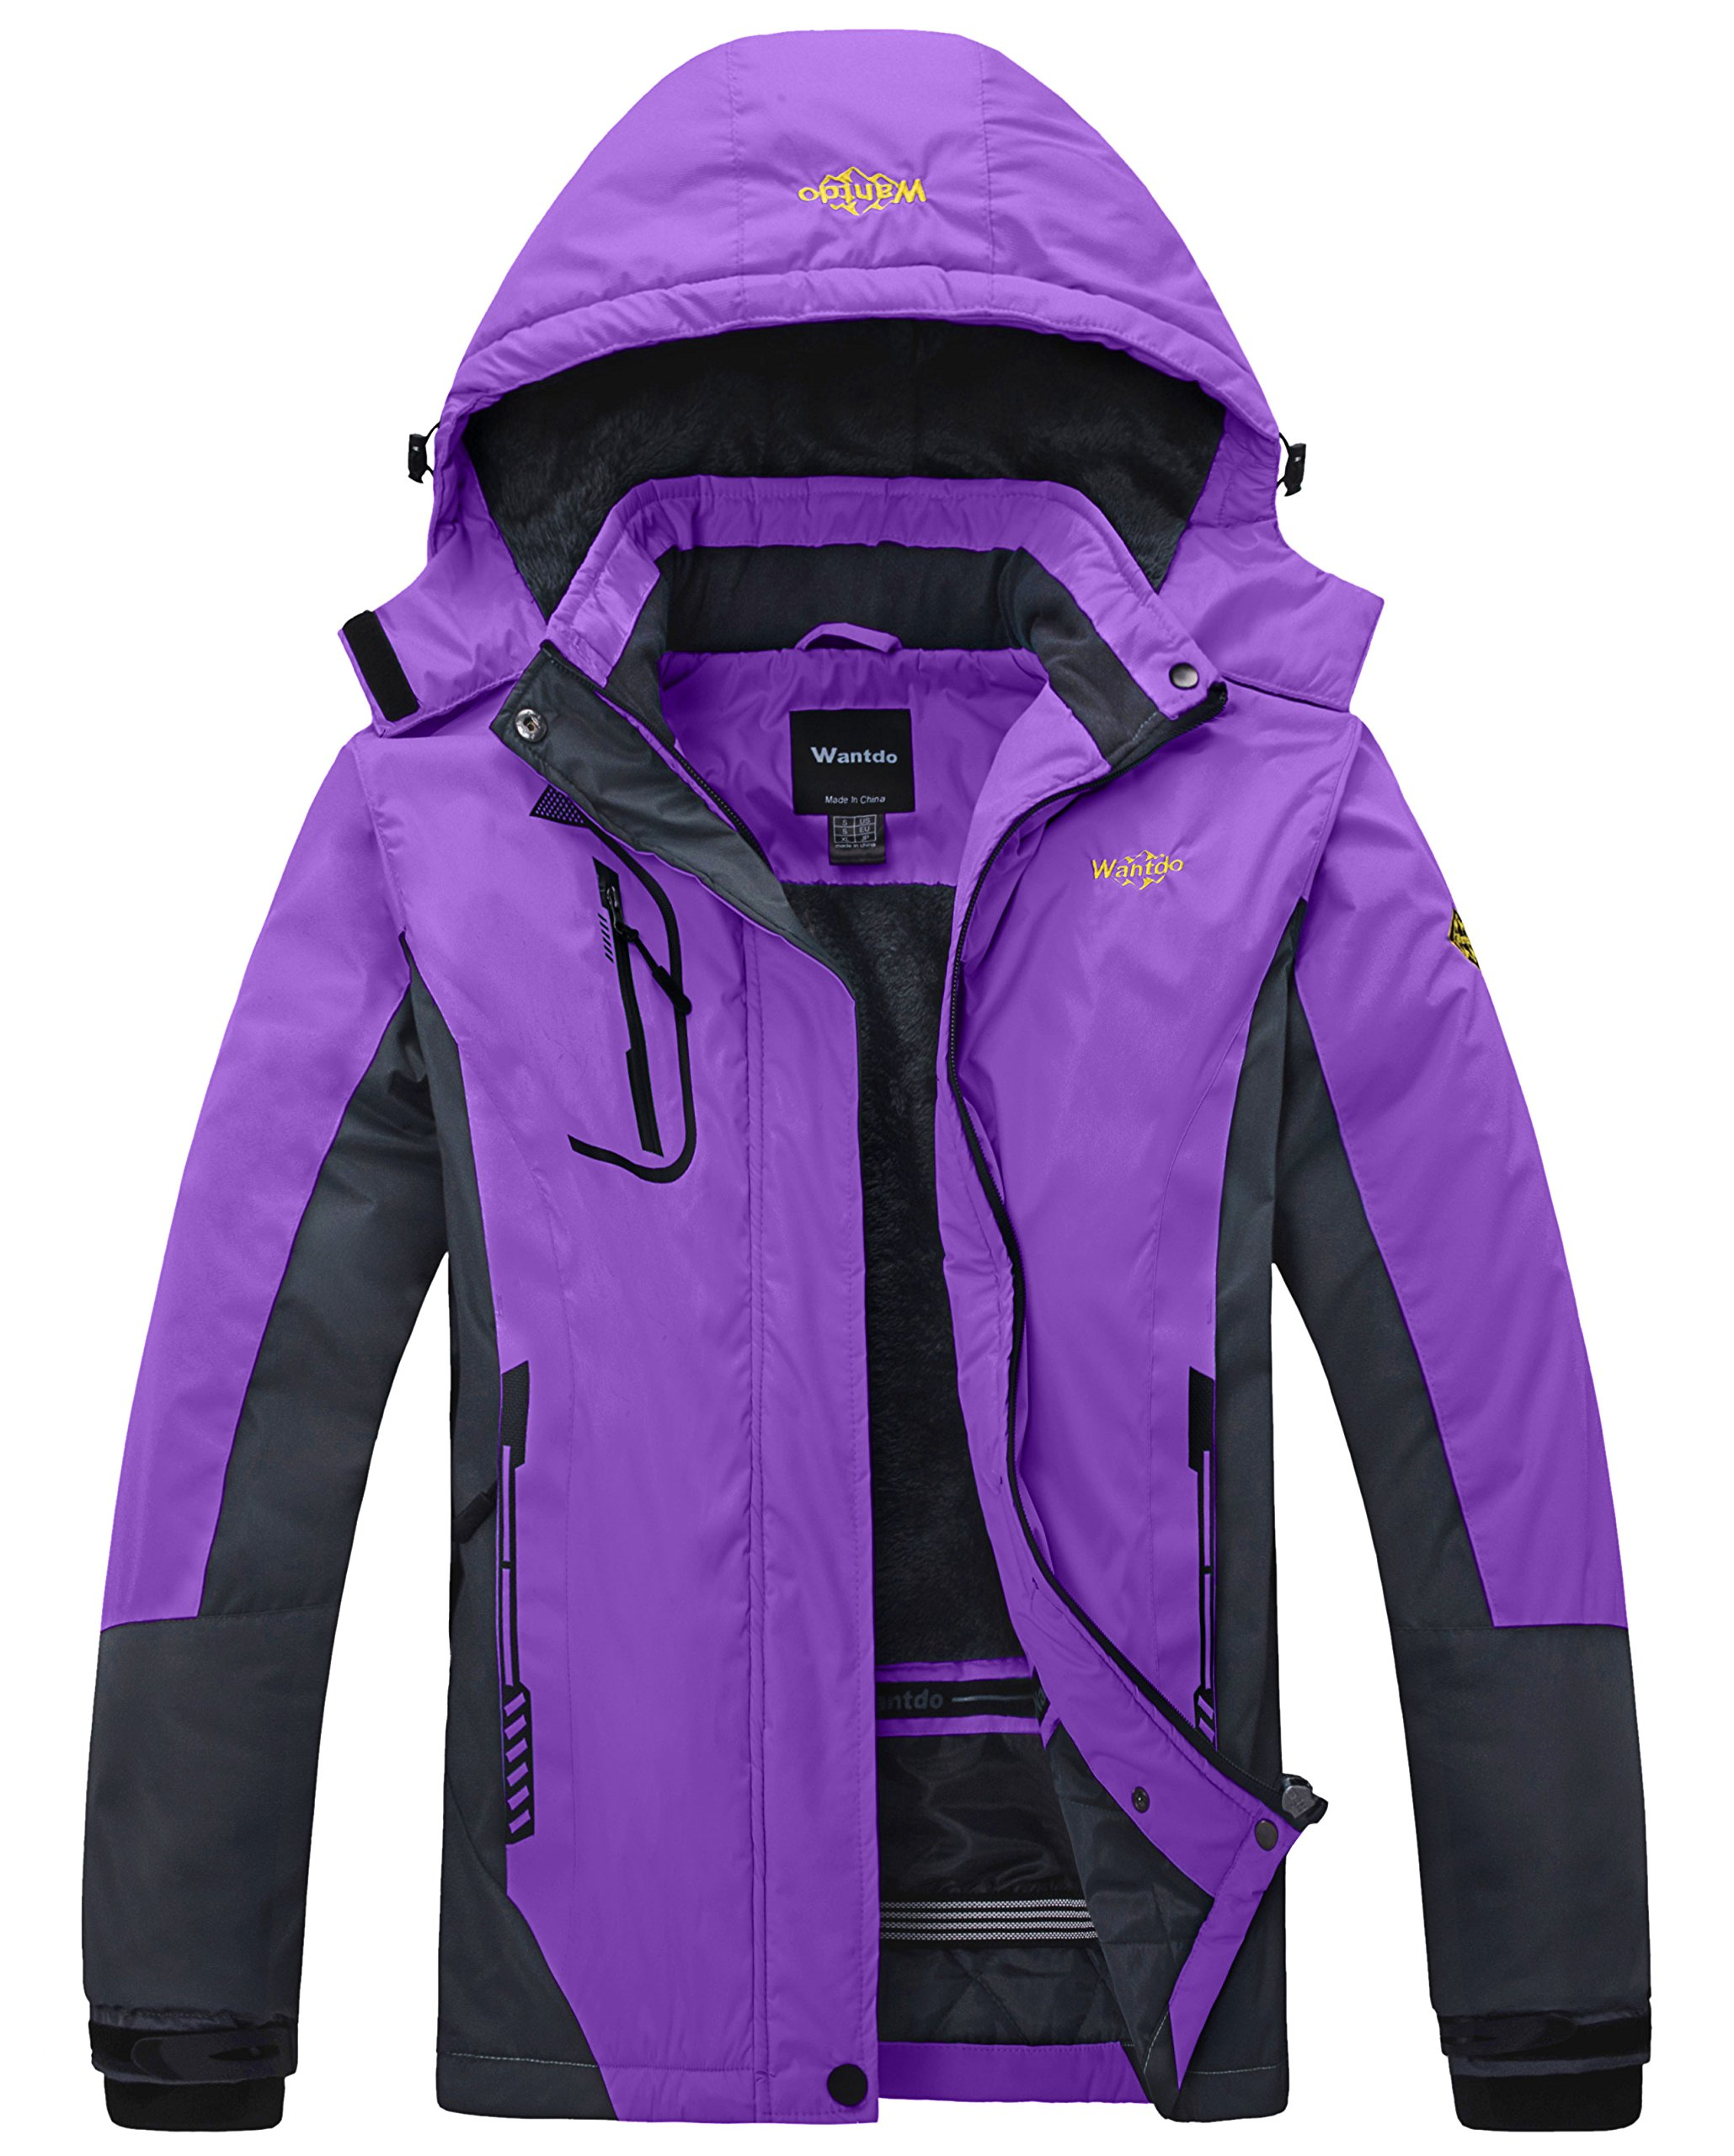 Wantdo Women's Waterproof Mountain Jacket Fleece Windproof Ski Jacket Purple US S  Purple Small by Wantdo